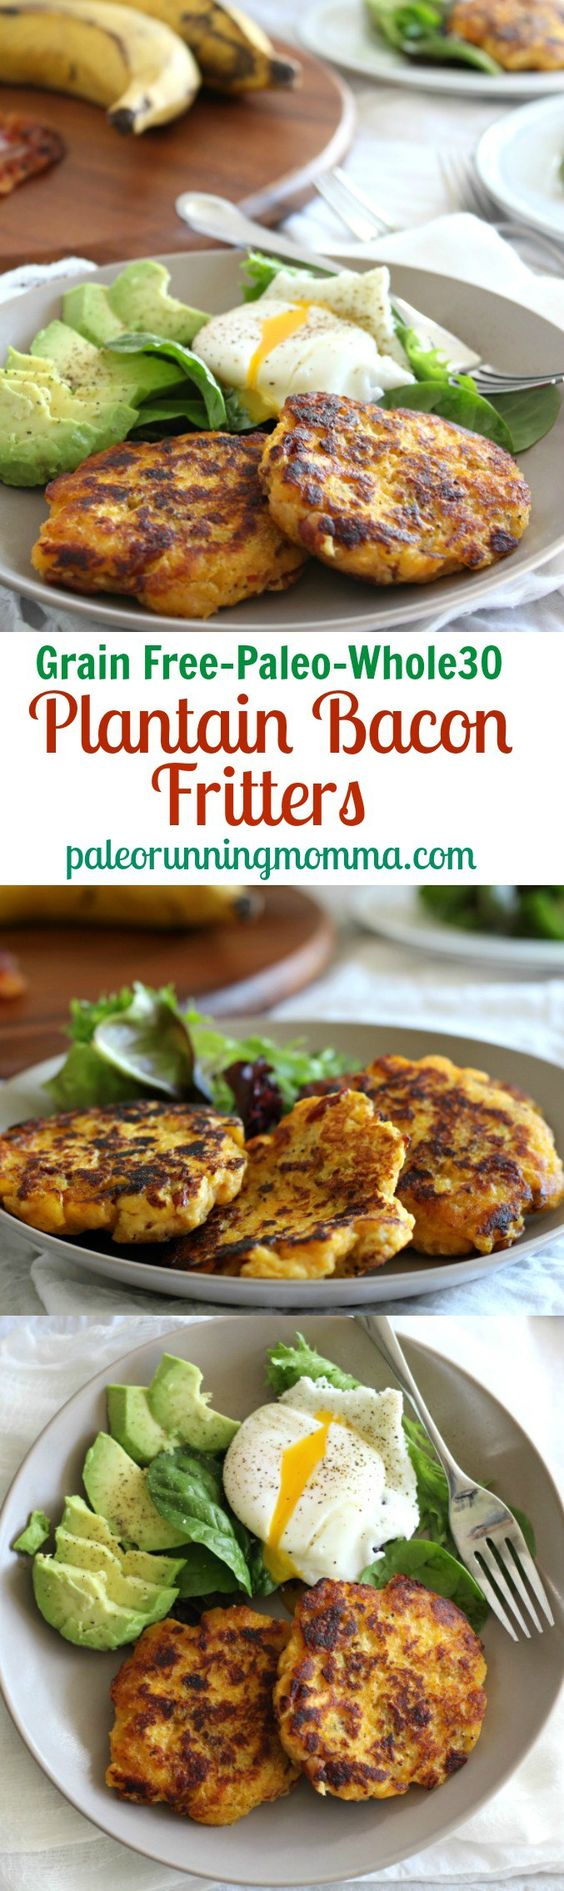 Easy and healthy recipe for Plantain Bacon Fritters {Grain free, #paleo, #whole30} with avocado and poached egg. #glutenfree #grainfree